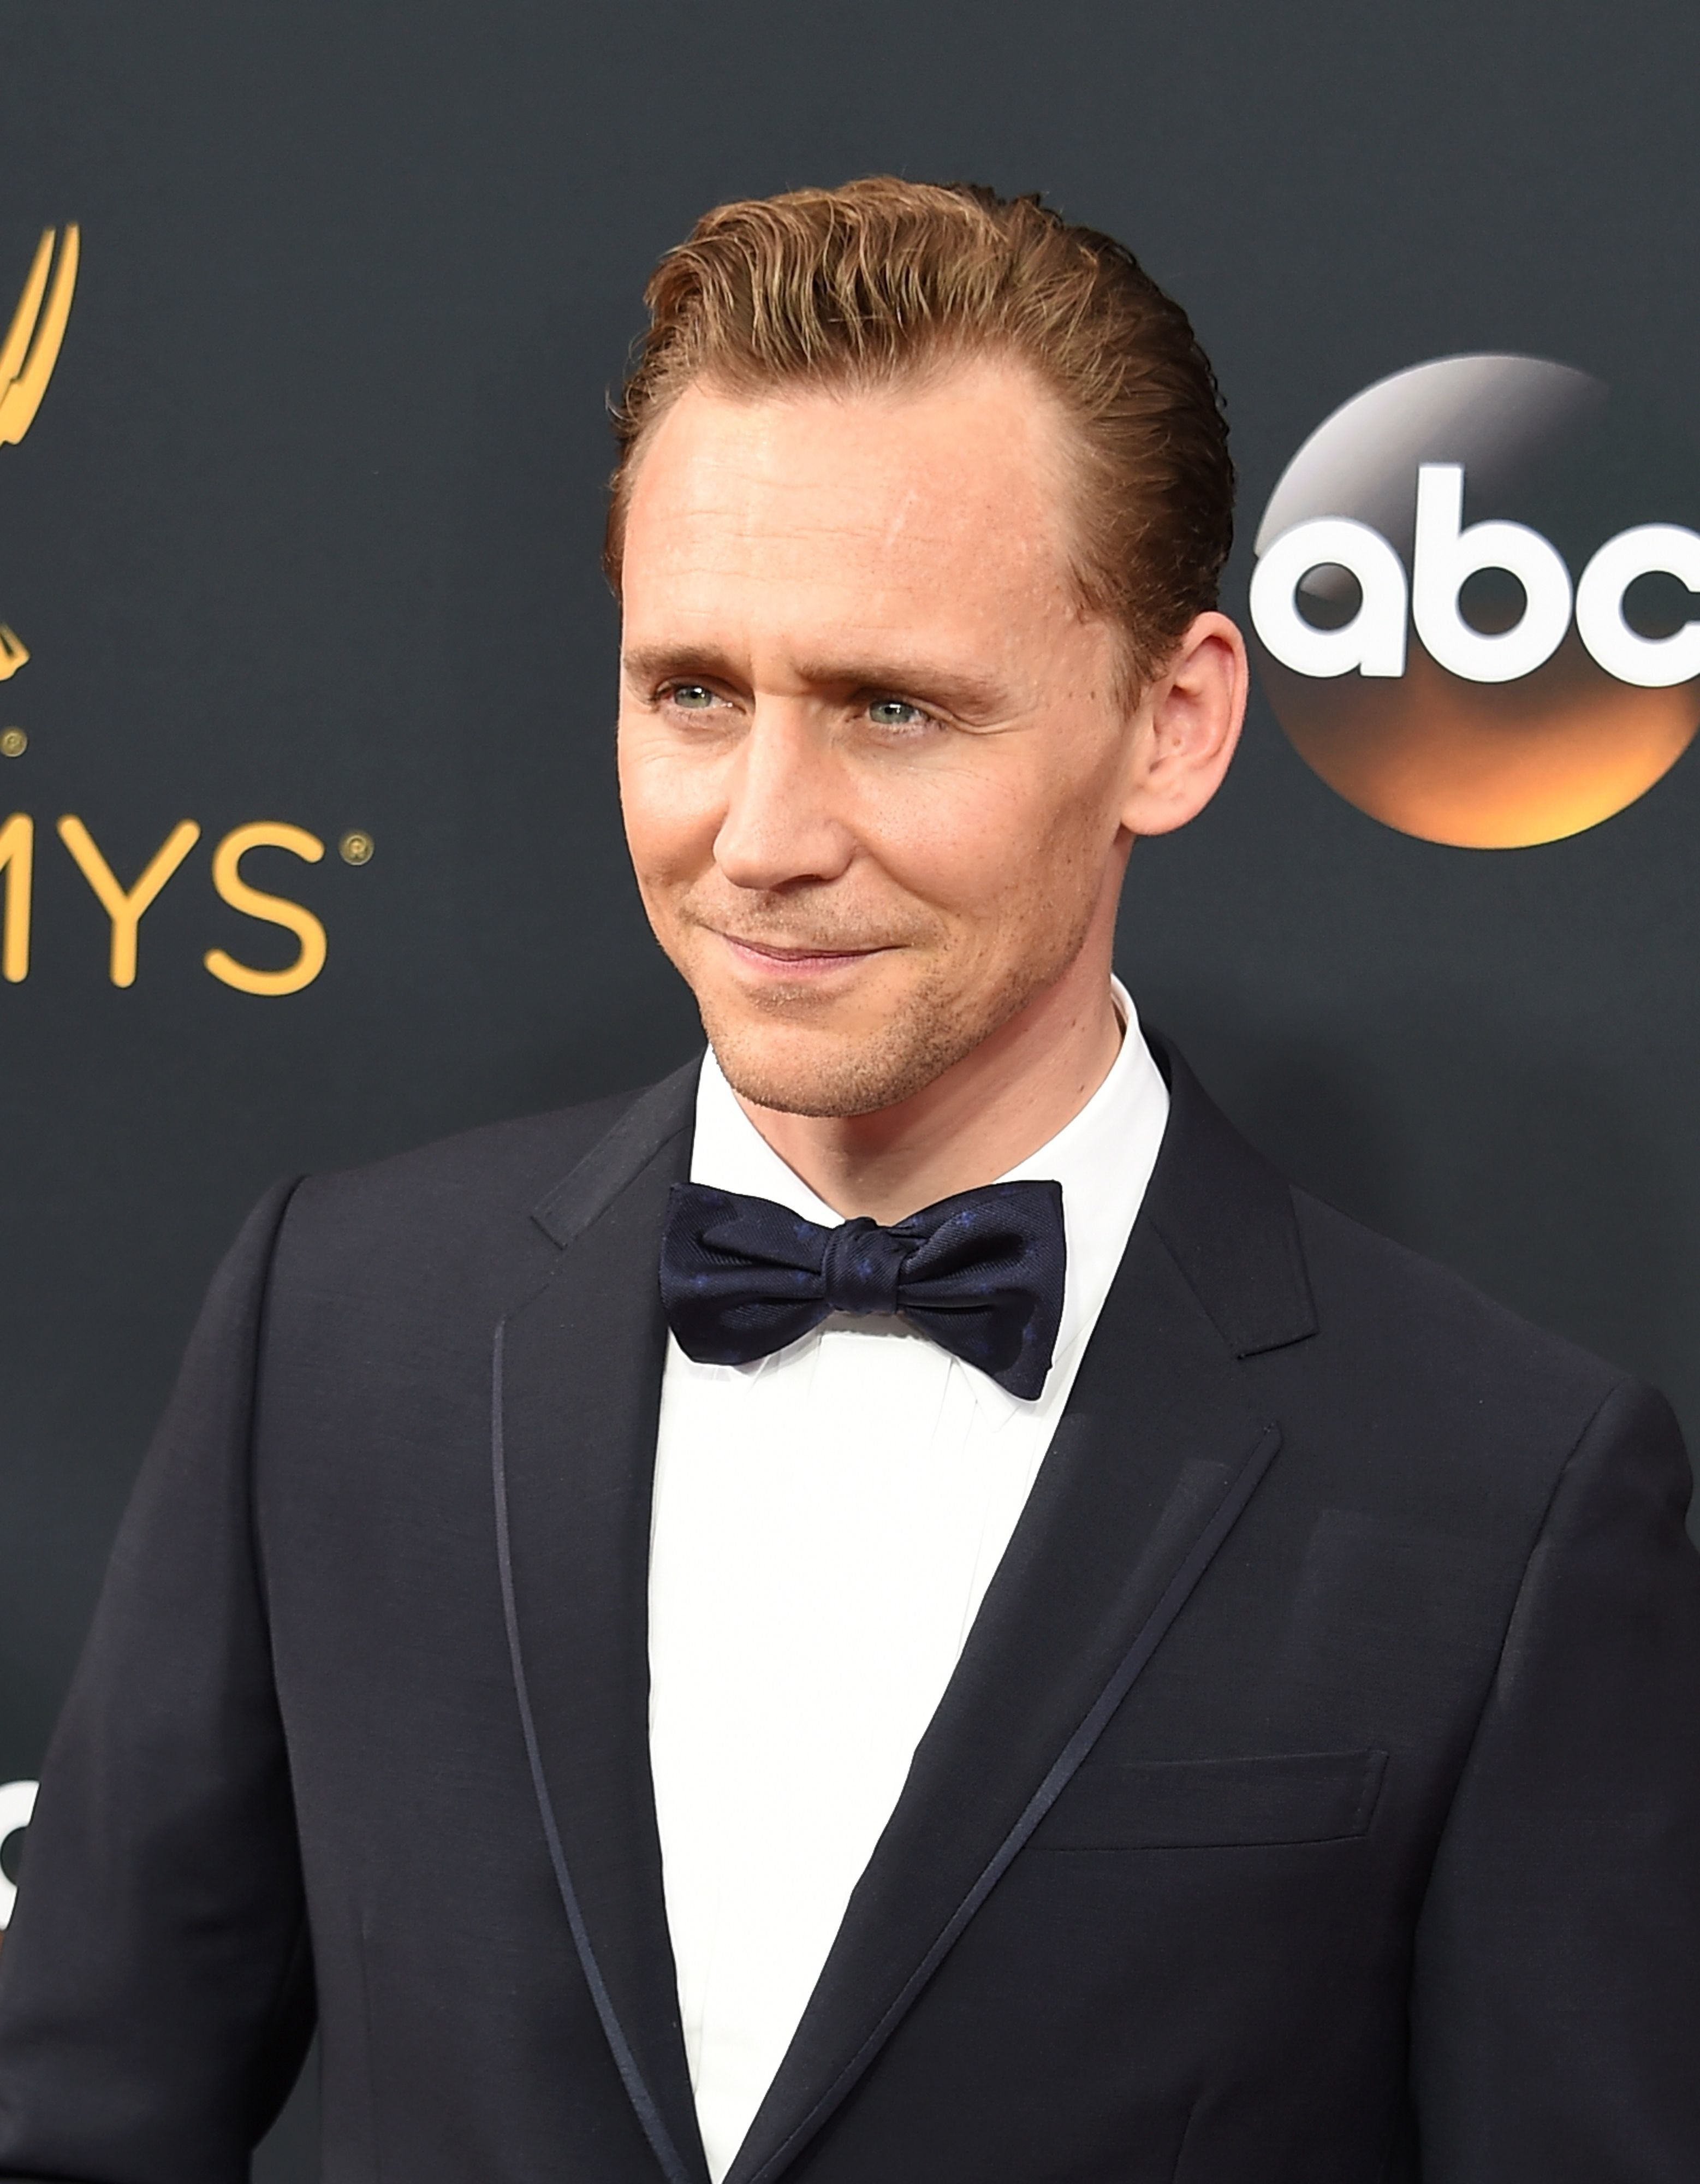 It Looks Like Tom Hiddleston Isn't Wasting Any Time In Moving On From